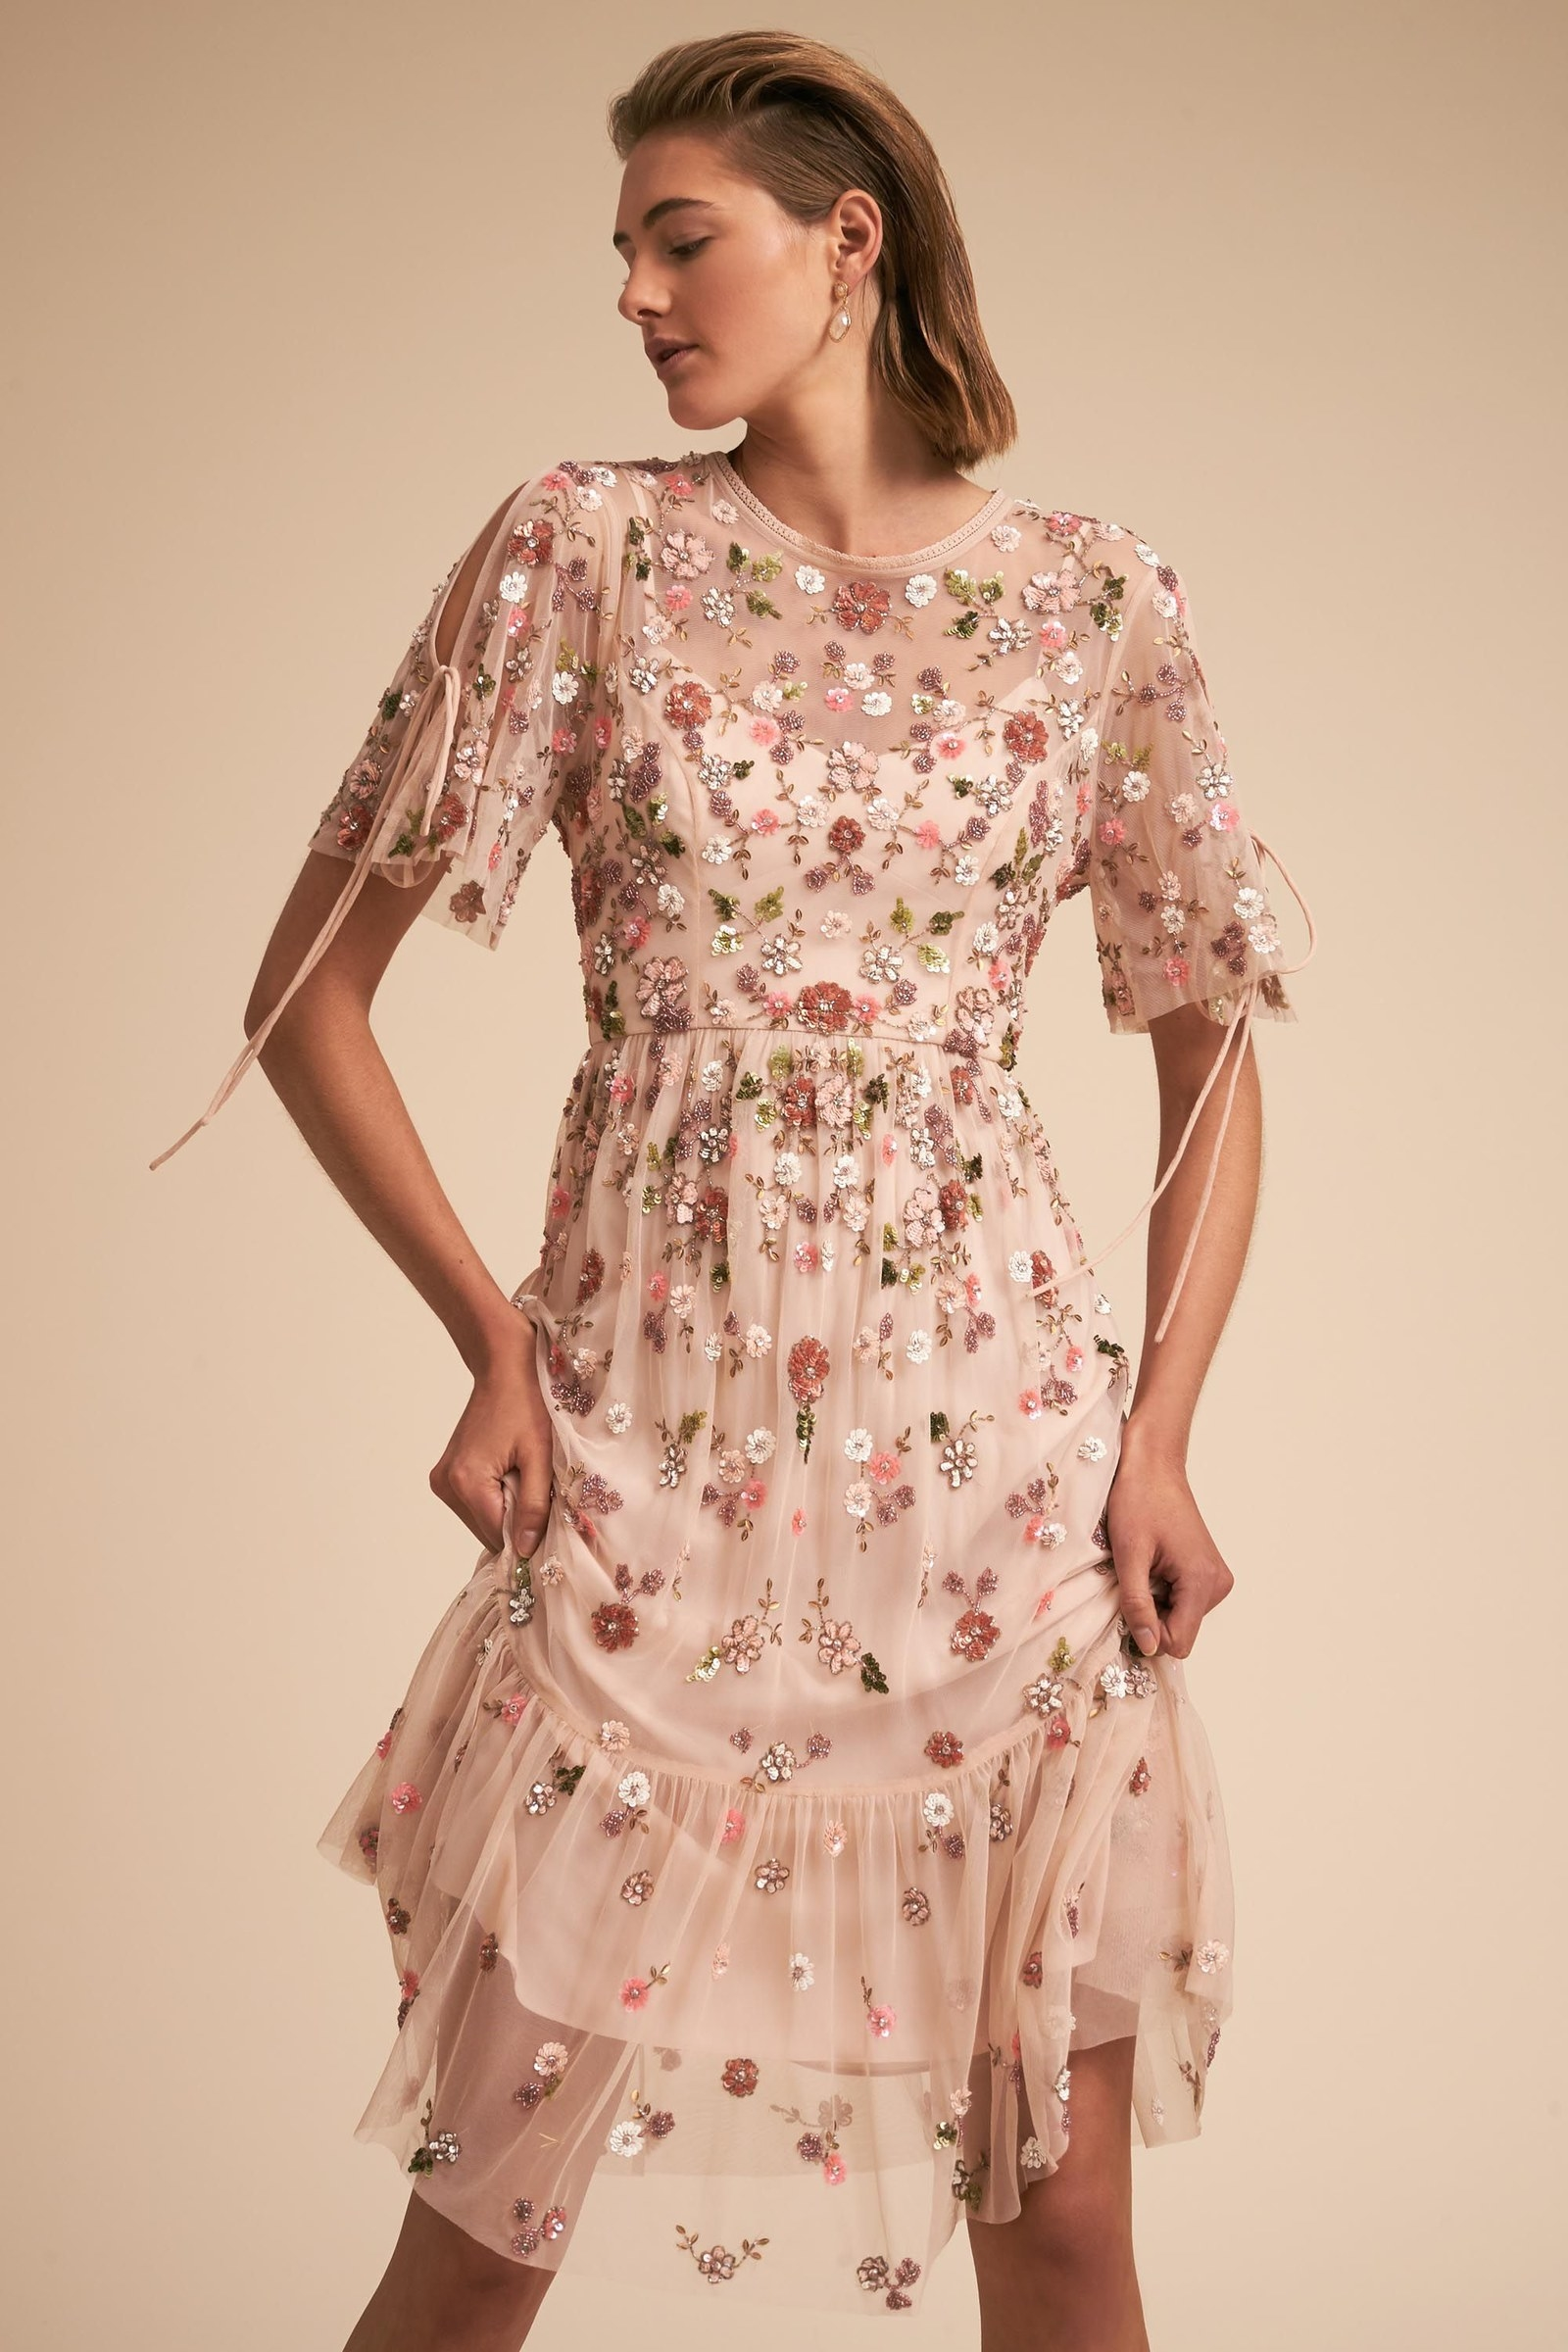 a55f956615b6 BHLDN has a noteworthy occasion section filled with gorgeous formal dresses.